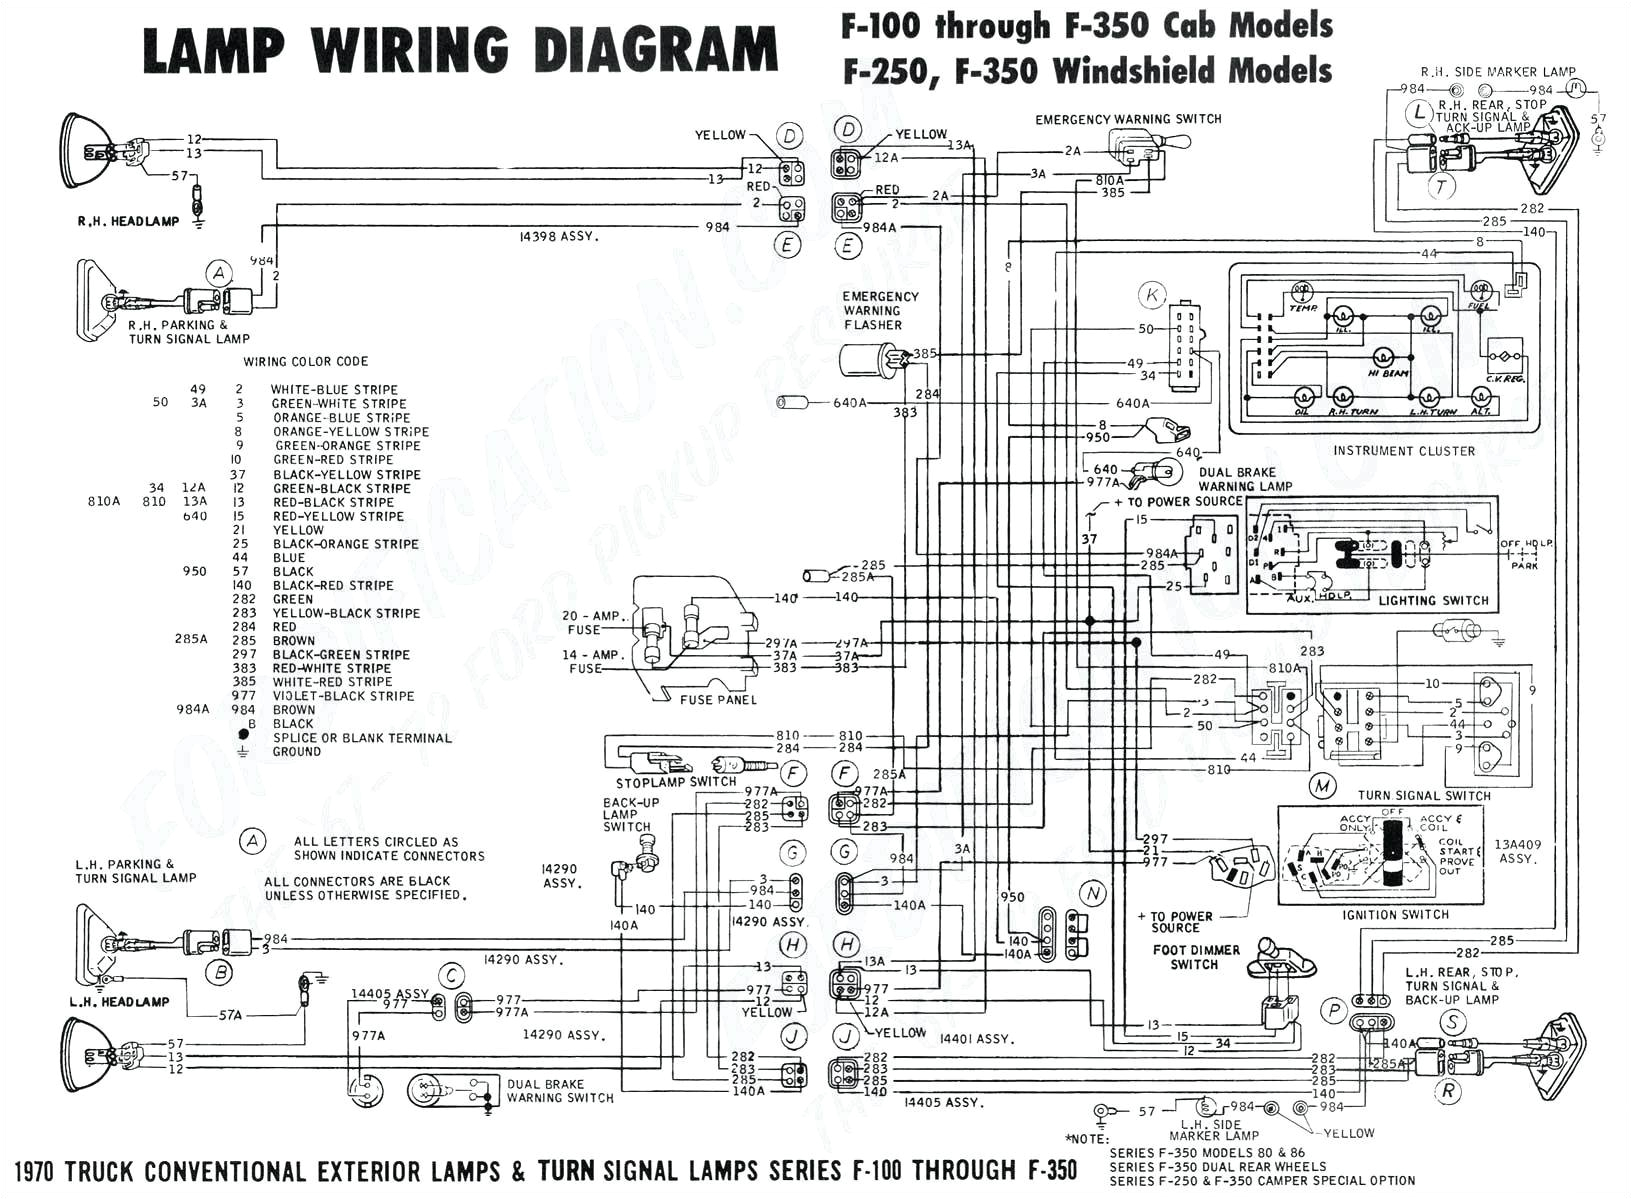 Toyota Hiace Wiring Diagram Fuse Box 95 toyota Corolla Wiring Diagrams Konsult